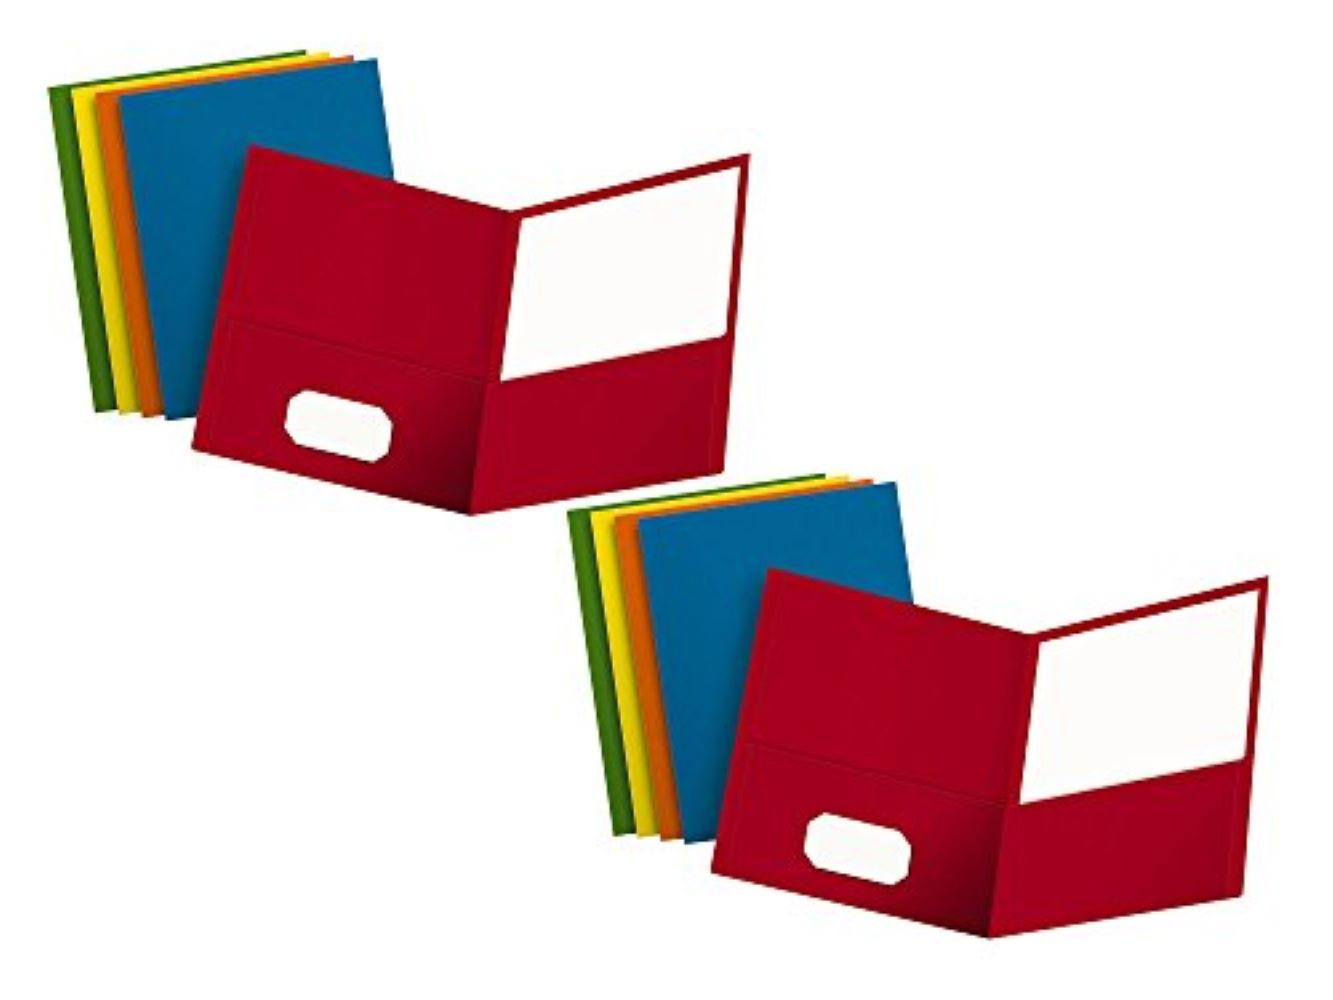 Oxford Two-Pocket Folders Orange Green - New Holds 100 Sheets Textured Paper Assorted Colors: Red Light Blue Yellow 67613 Letter Size Box of 50